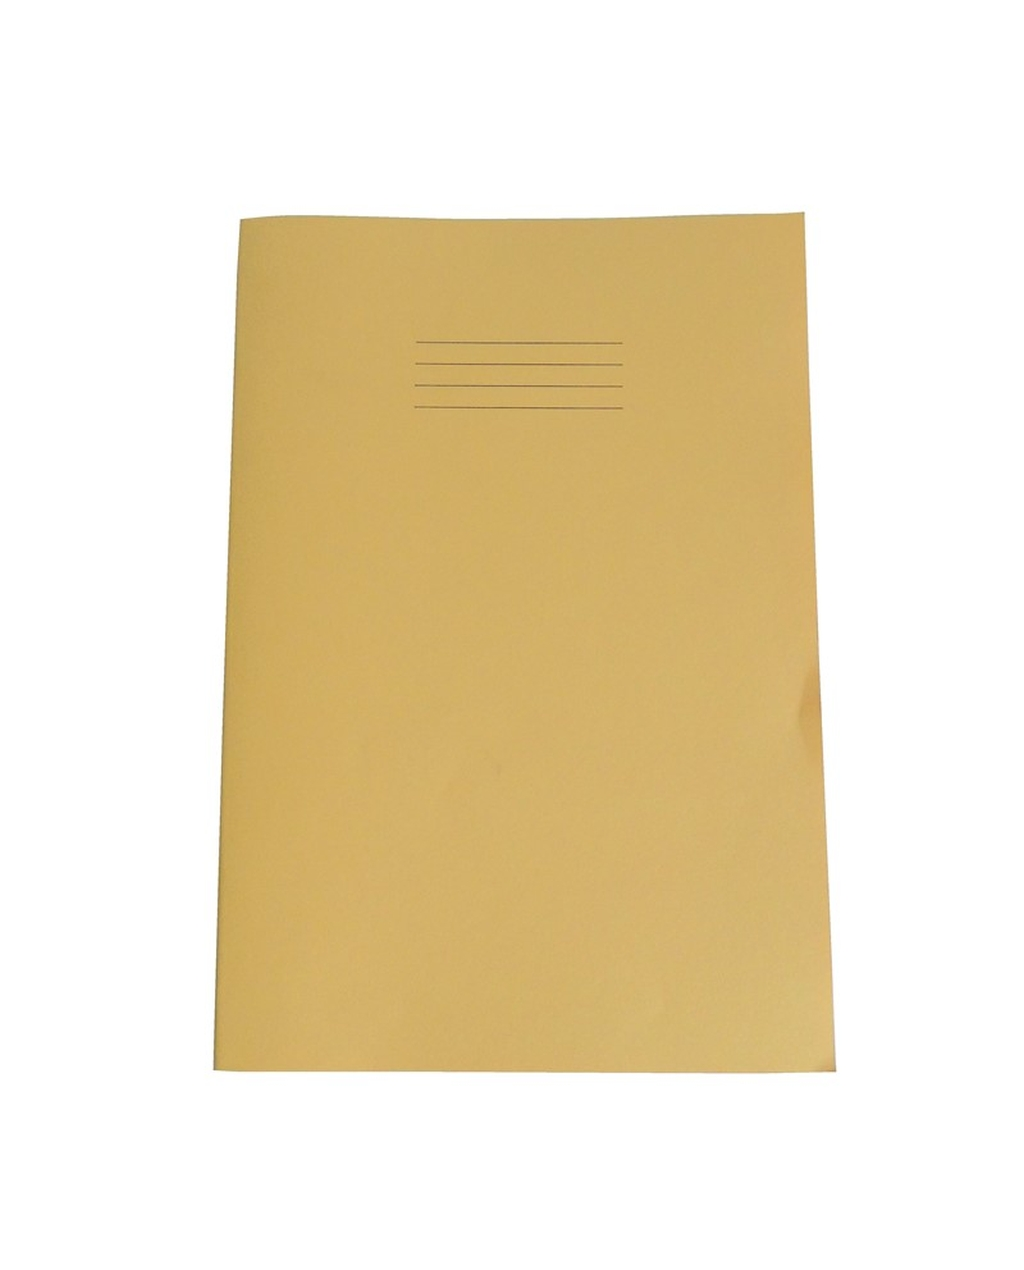 Exercise Book A4+ size (330 x 250mm) Yellow Cover 12mm Ruled 40 Pages